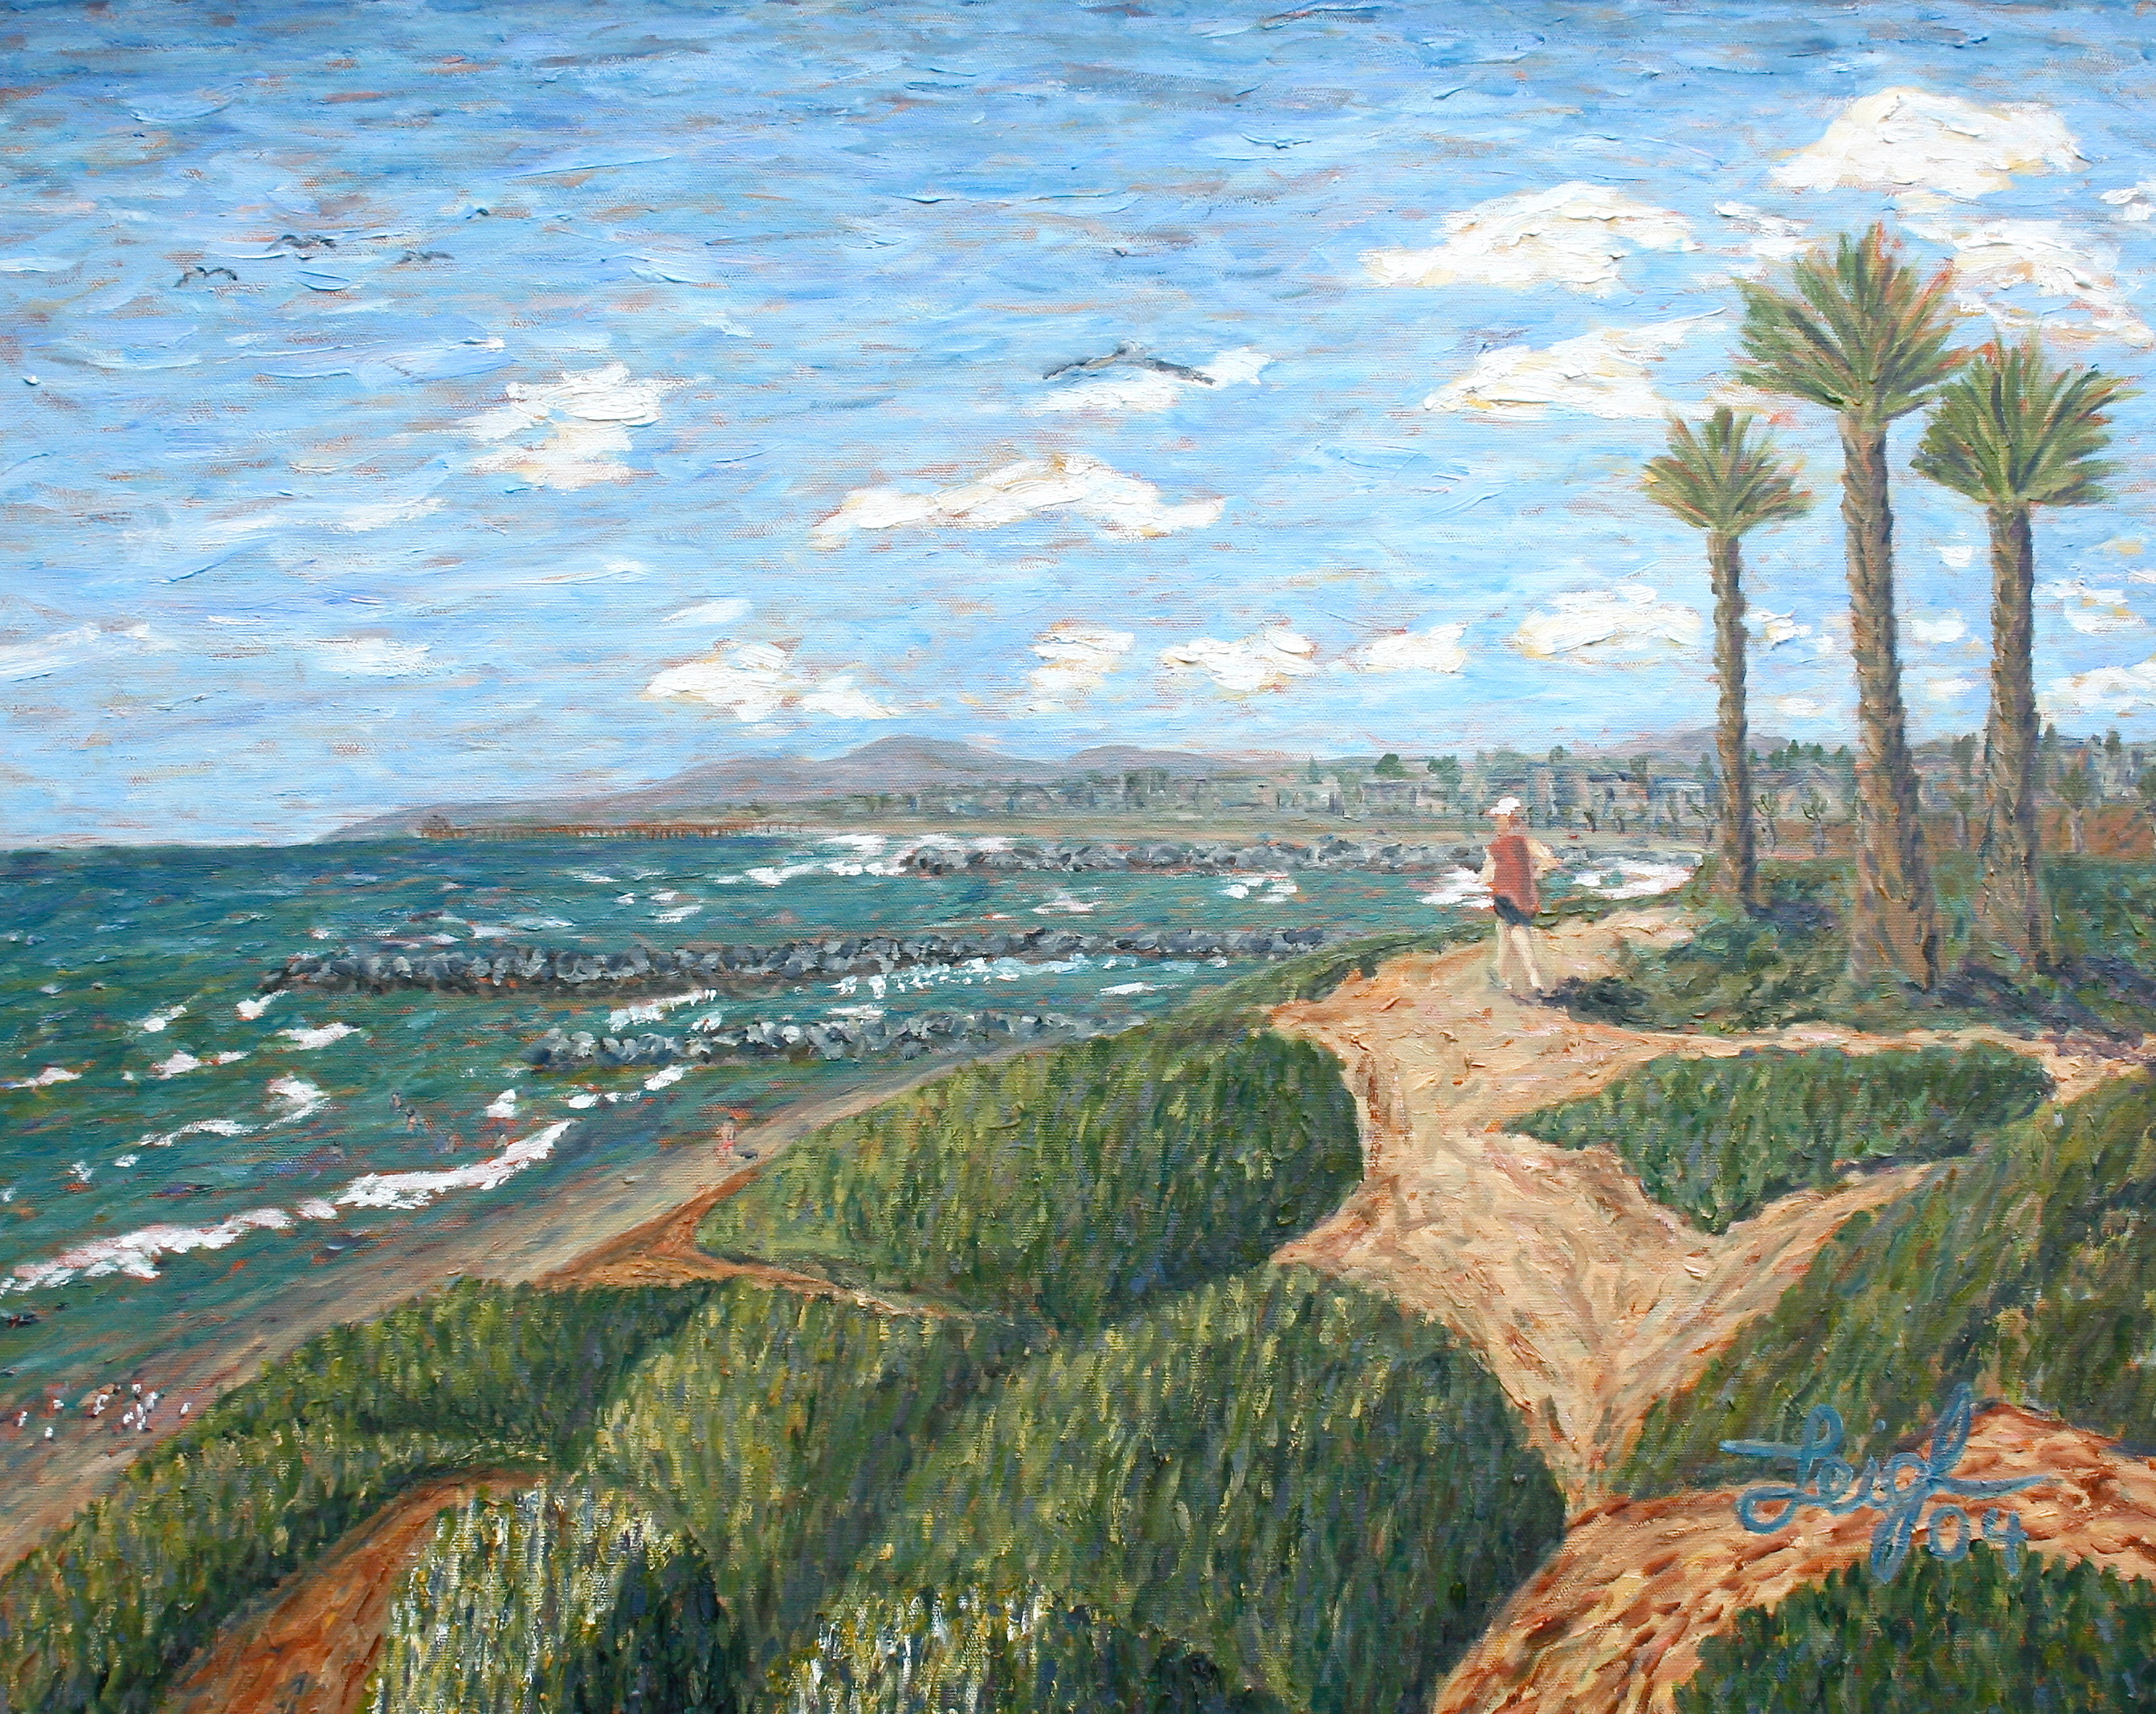 Jogger above Warm Waters  ~  Jeffrey Frazier, Escondido, CA   2004  •  30 x 24